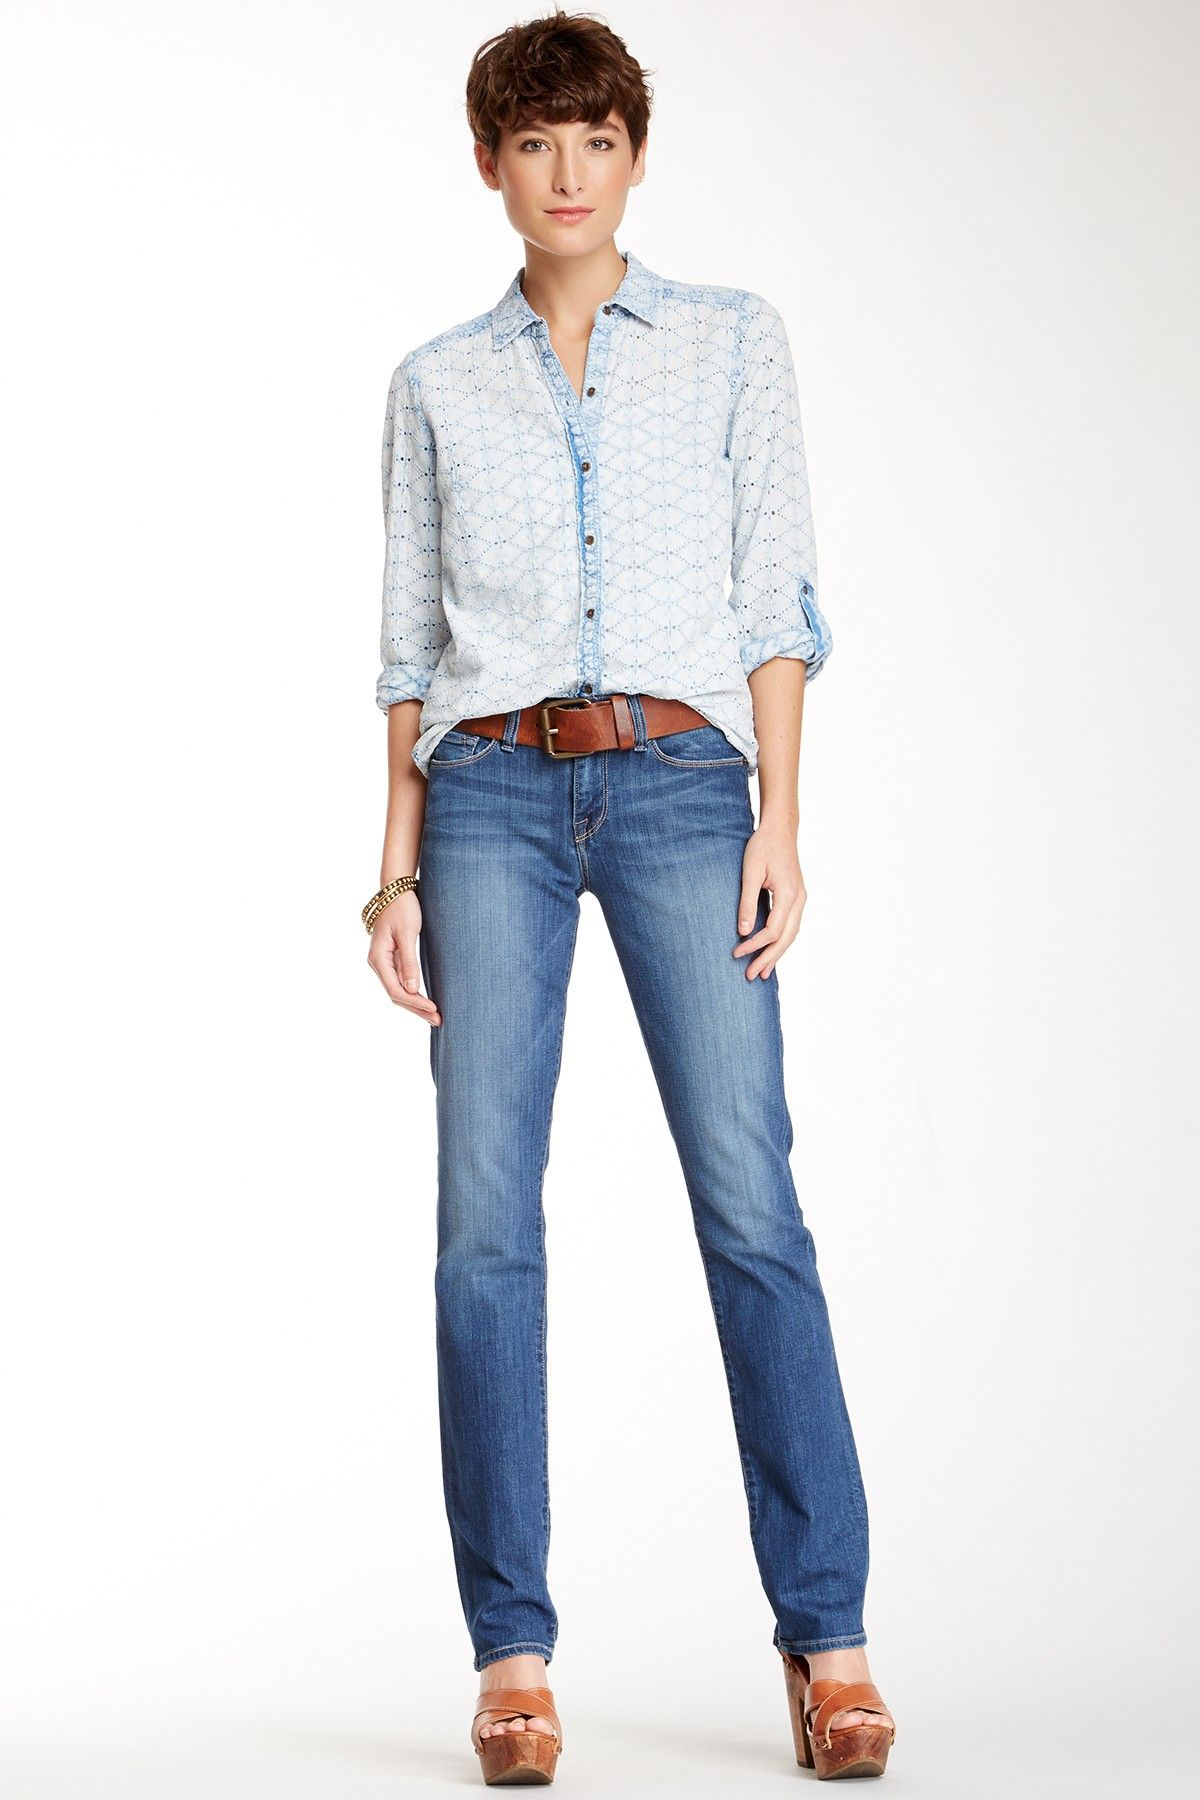 Lucky Brand Sofia Straight Jean by Lucky Brand on @nordstrom_rack outfit sort of